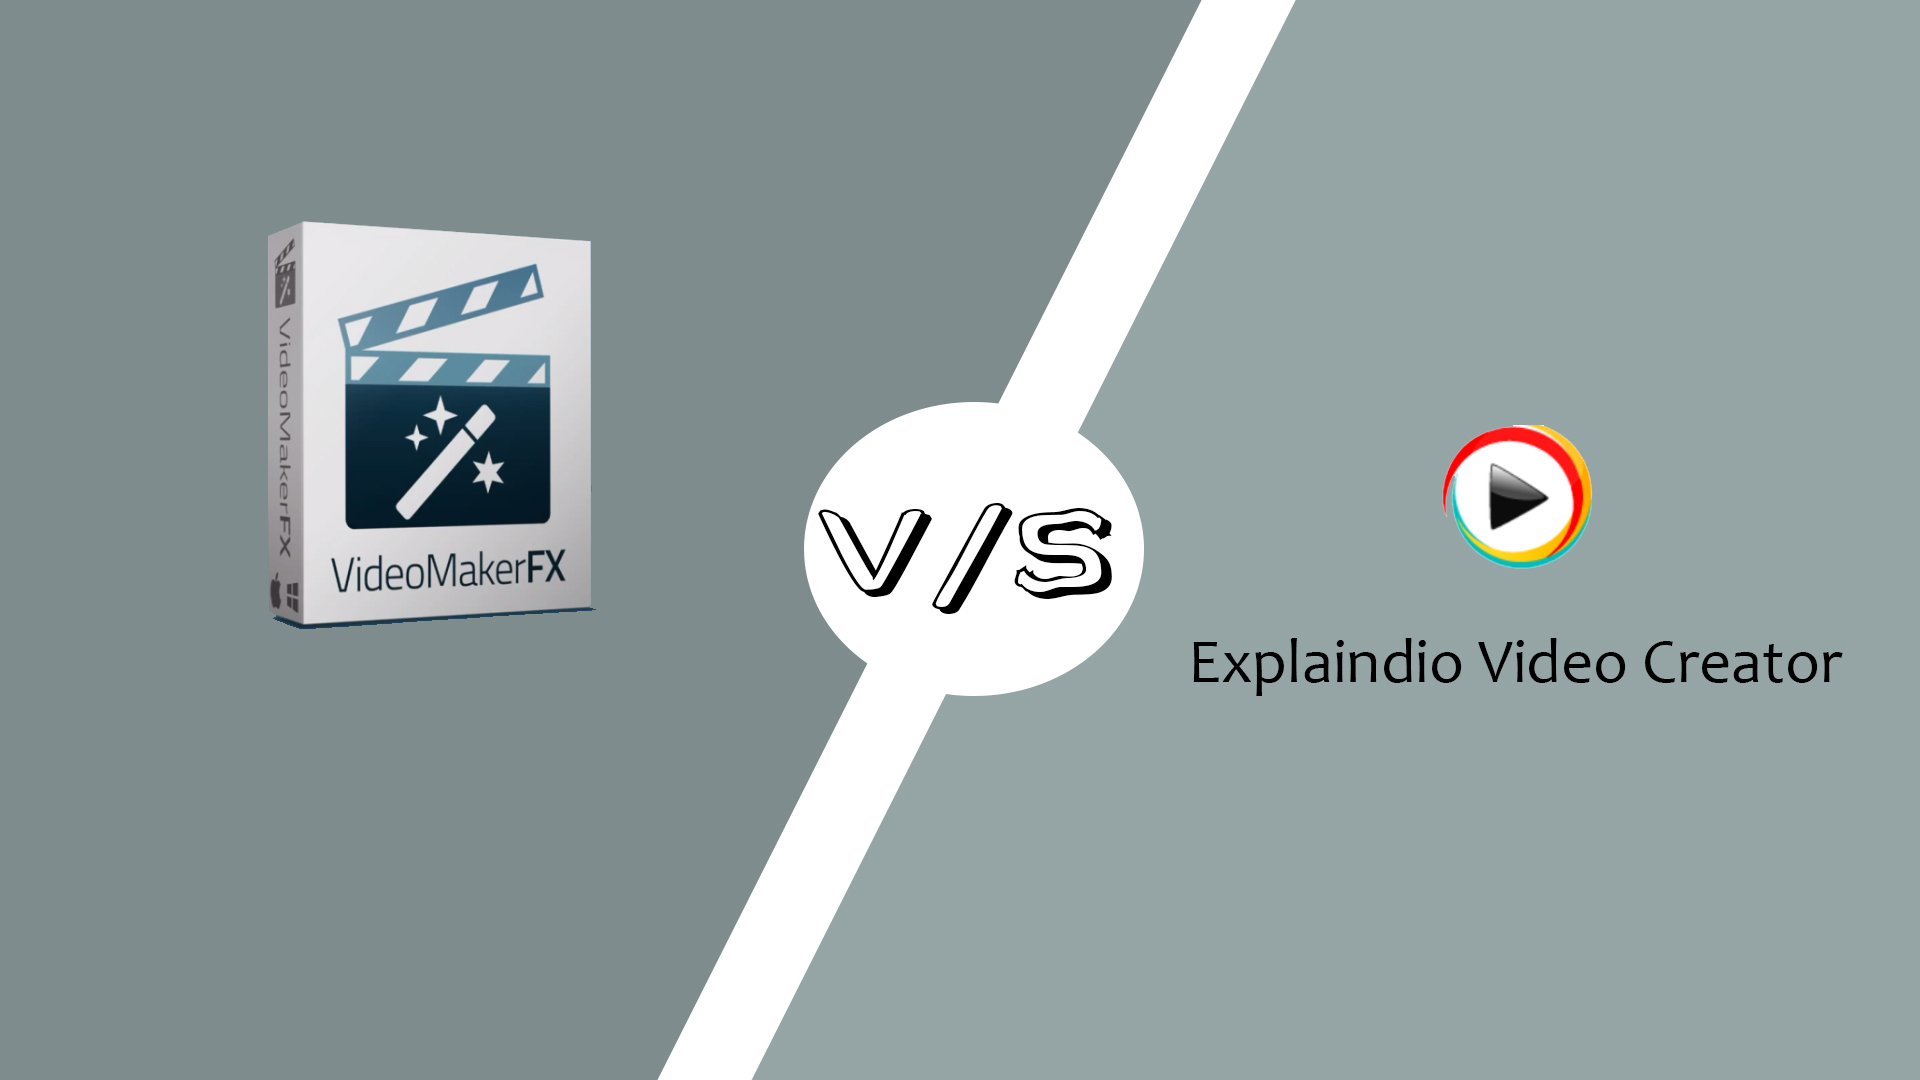 VideoMakerFX Vs. Explaindio Video Creator